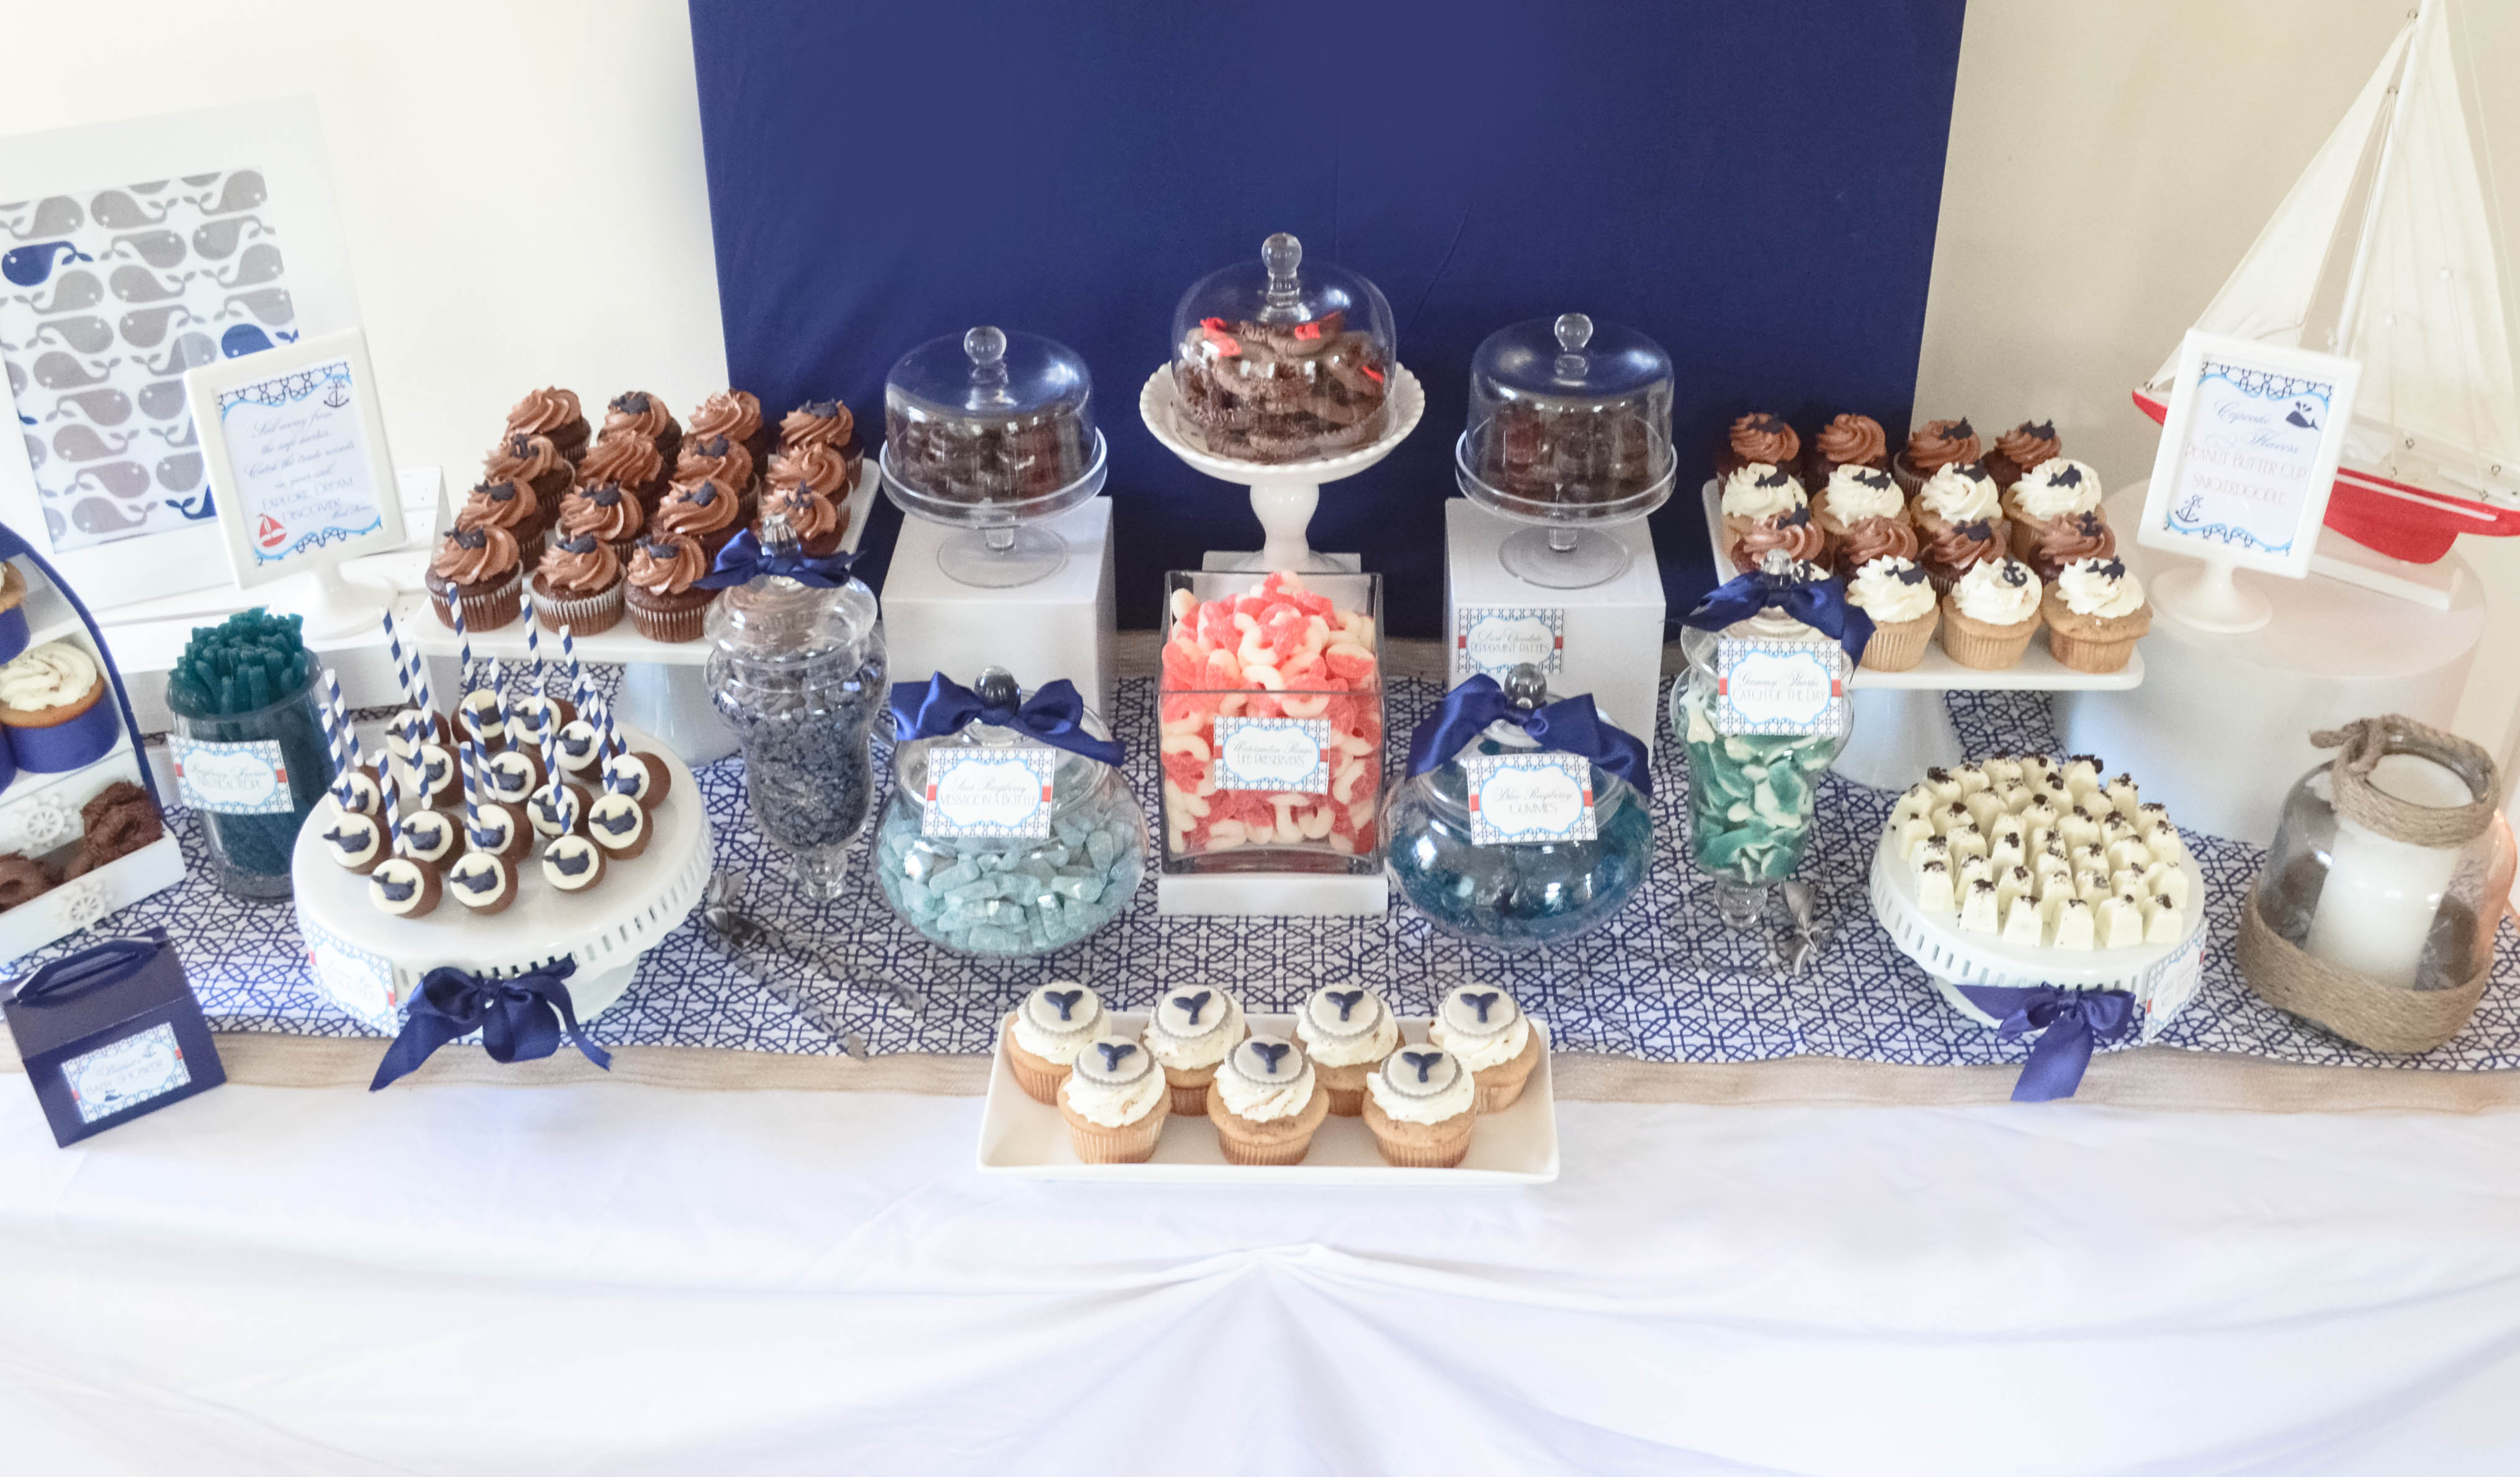 Preferential Nautical Candy Navy Desssert Table Www Nautical Whale Baby Shower Dessert Table Cw Boy Baby Shower Ideas Sports Boy Baby Shower Ideas Ducks ideas Boy Baby Shower Ideas